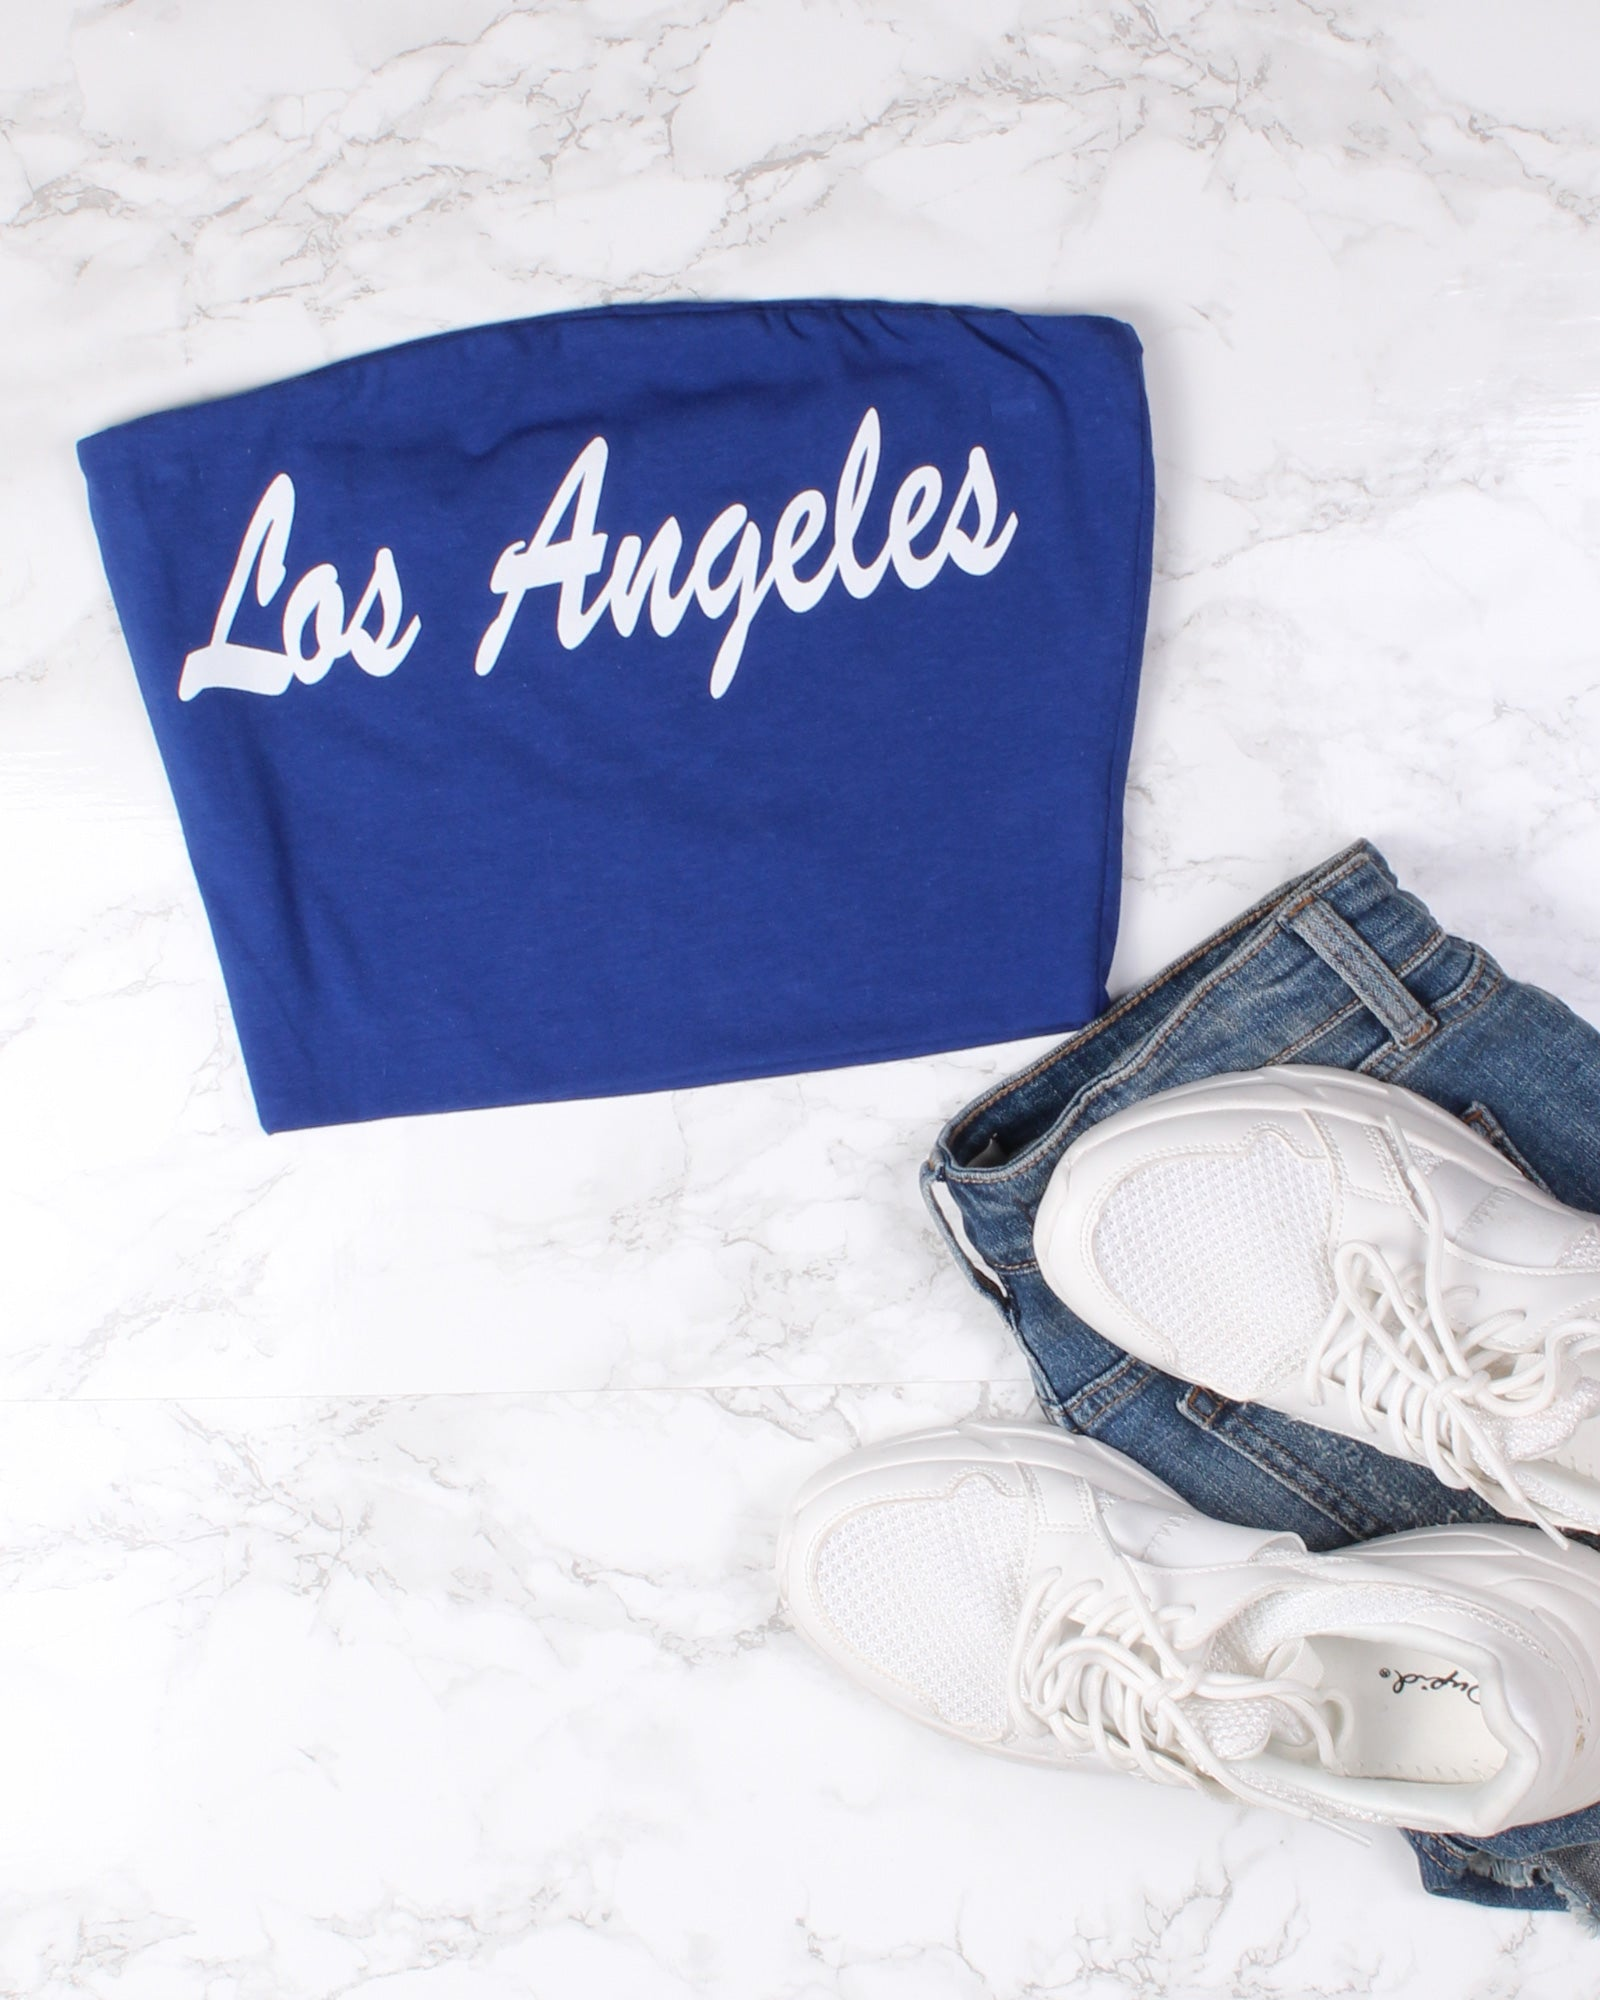 Fashion Q Shop Q Los Angeles, I'm Yours Crop Top (Blue) T9325LA